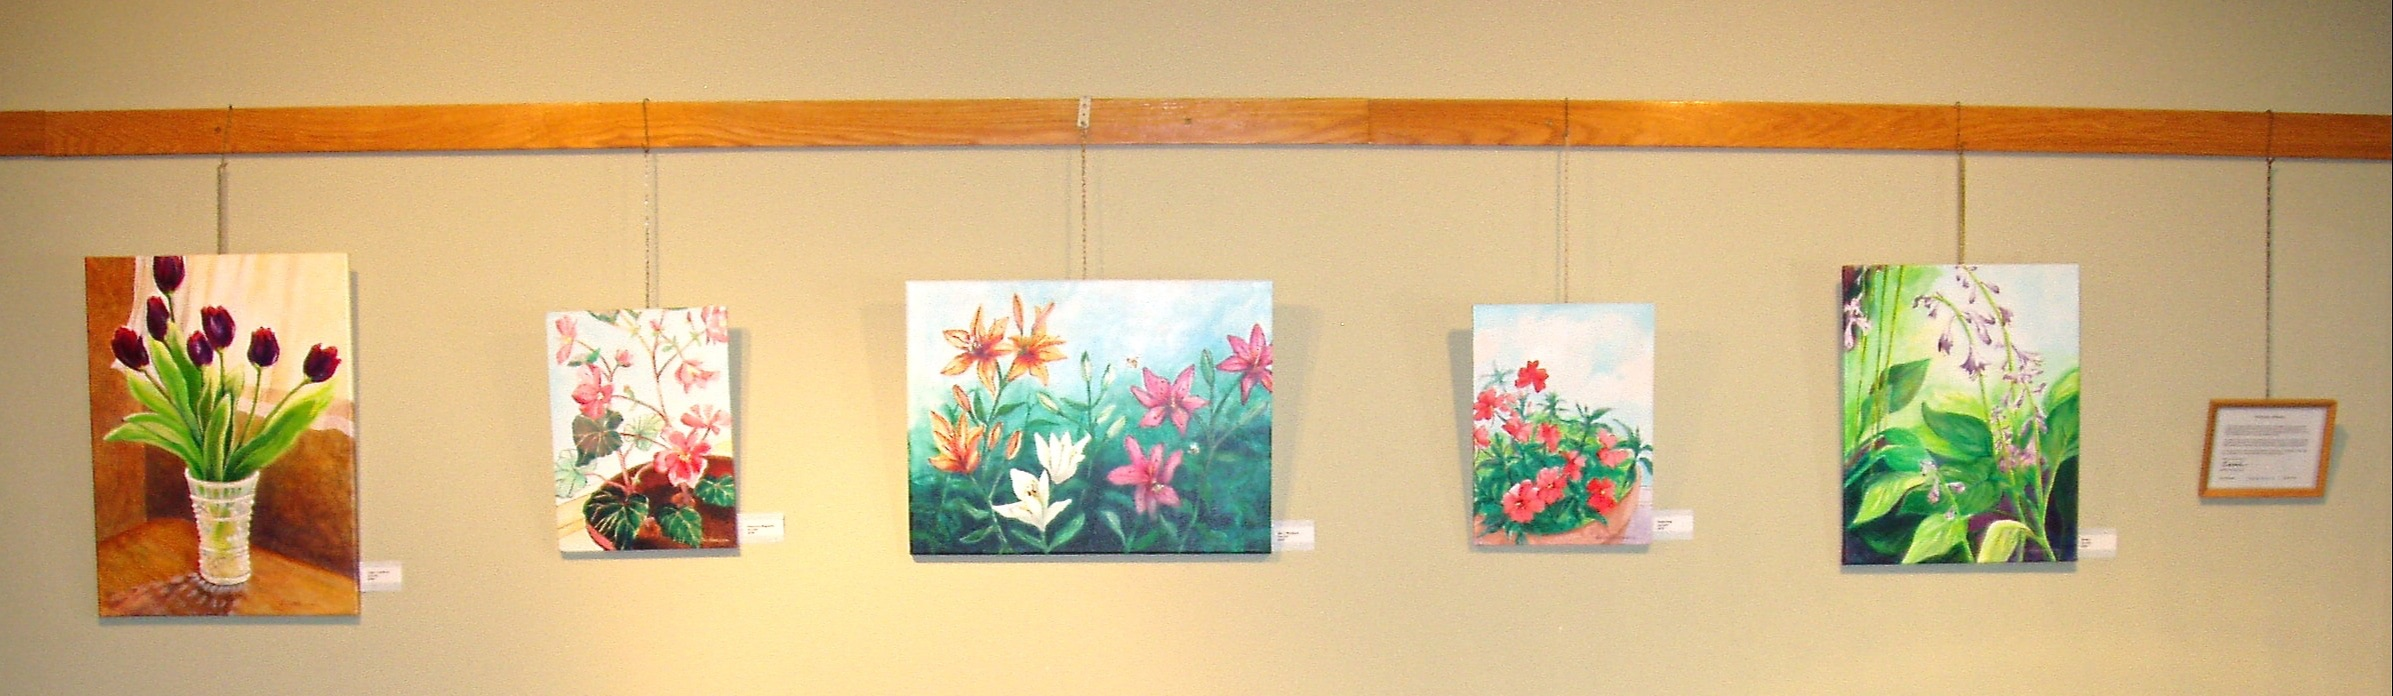 Exhibits - Carol Harrison Art